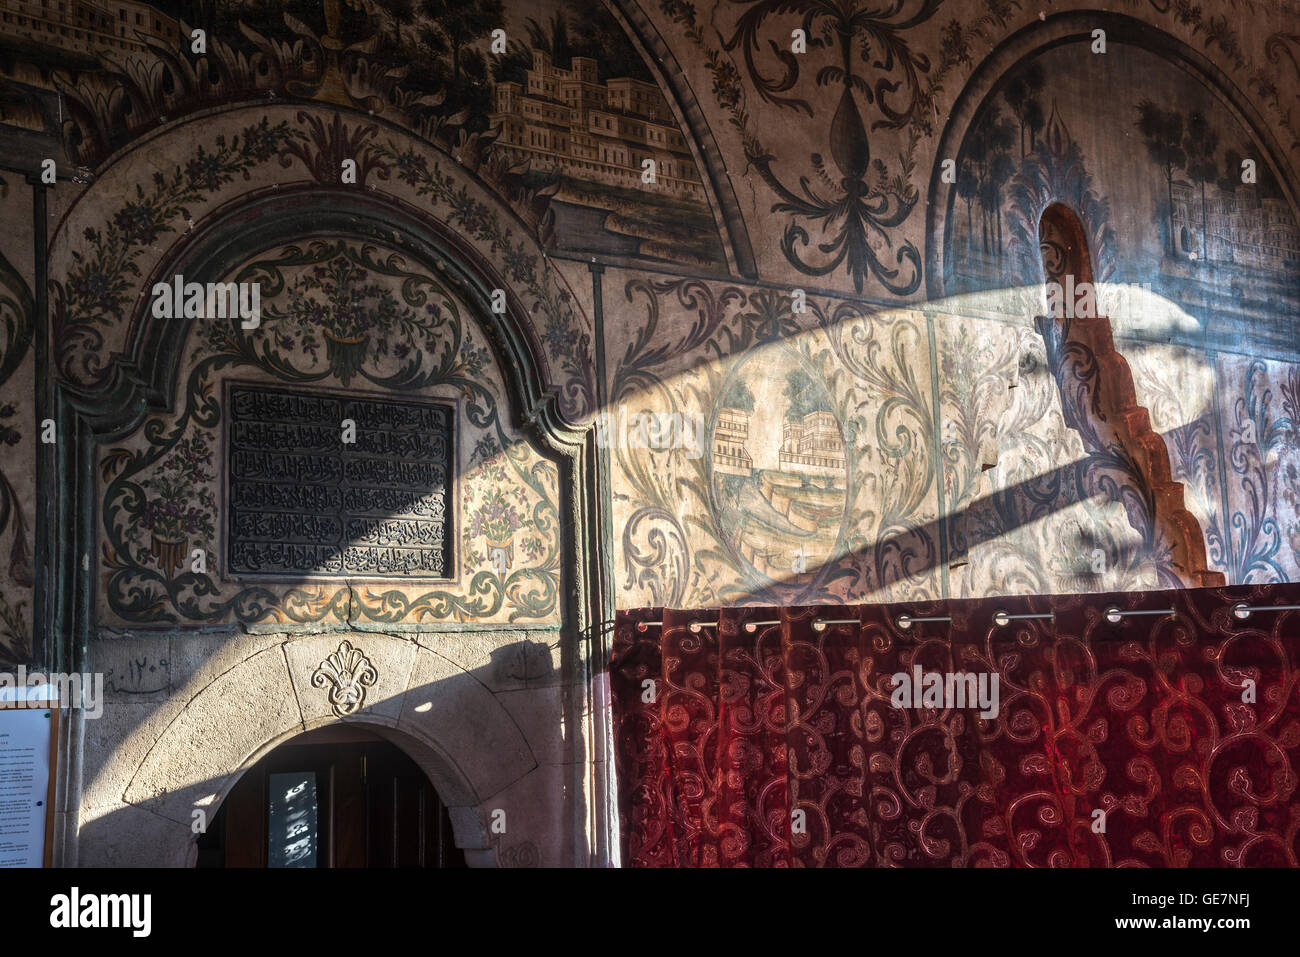 Painted decoration on the Interior of the Et'hem Bey Mosque on Skanderbeg Square, Tirana, Albania, - Stock Image